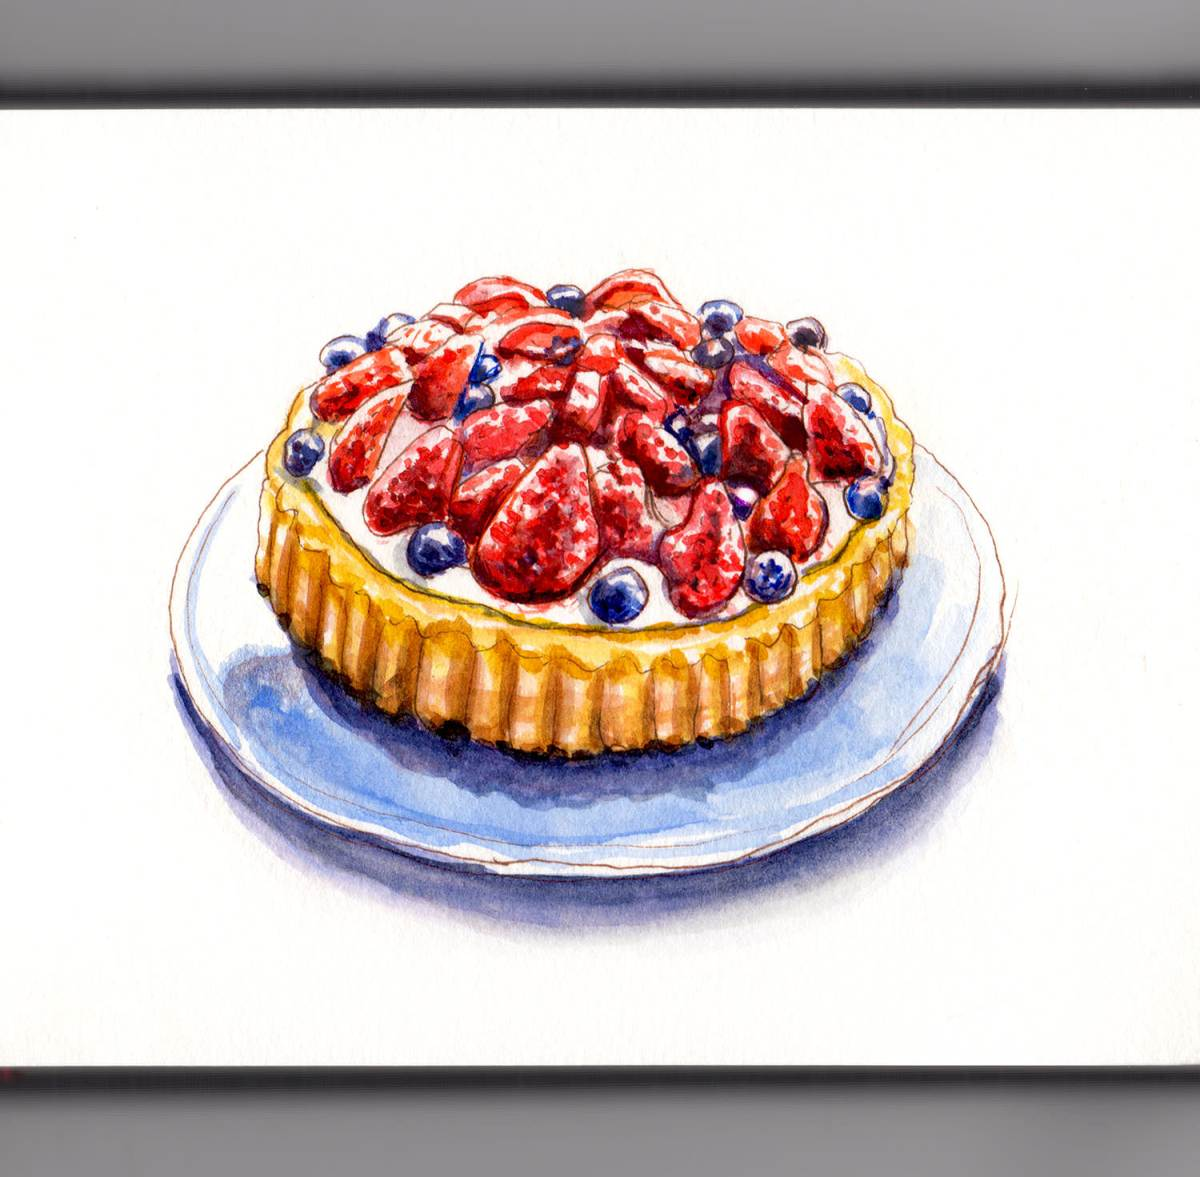 Day 4 - World Watercolor Month - Red White And Blue Strawberries Blueberries Dessert - #doodlewash